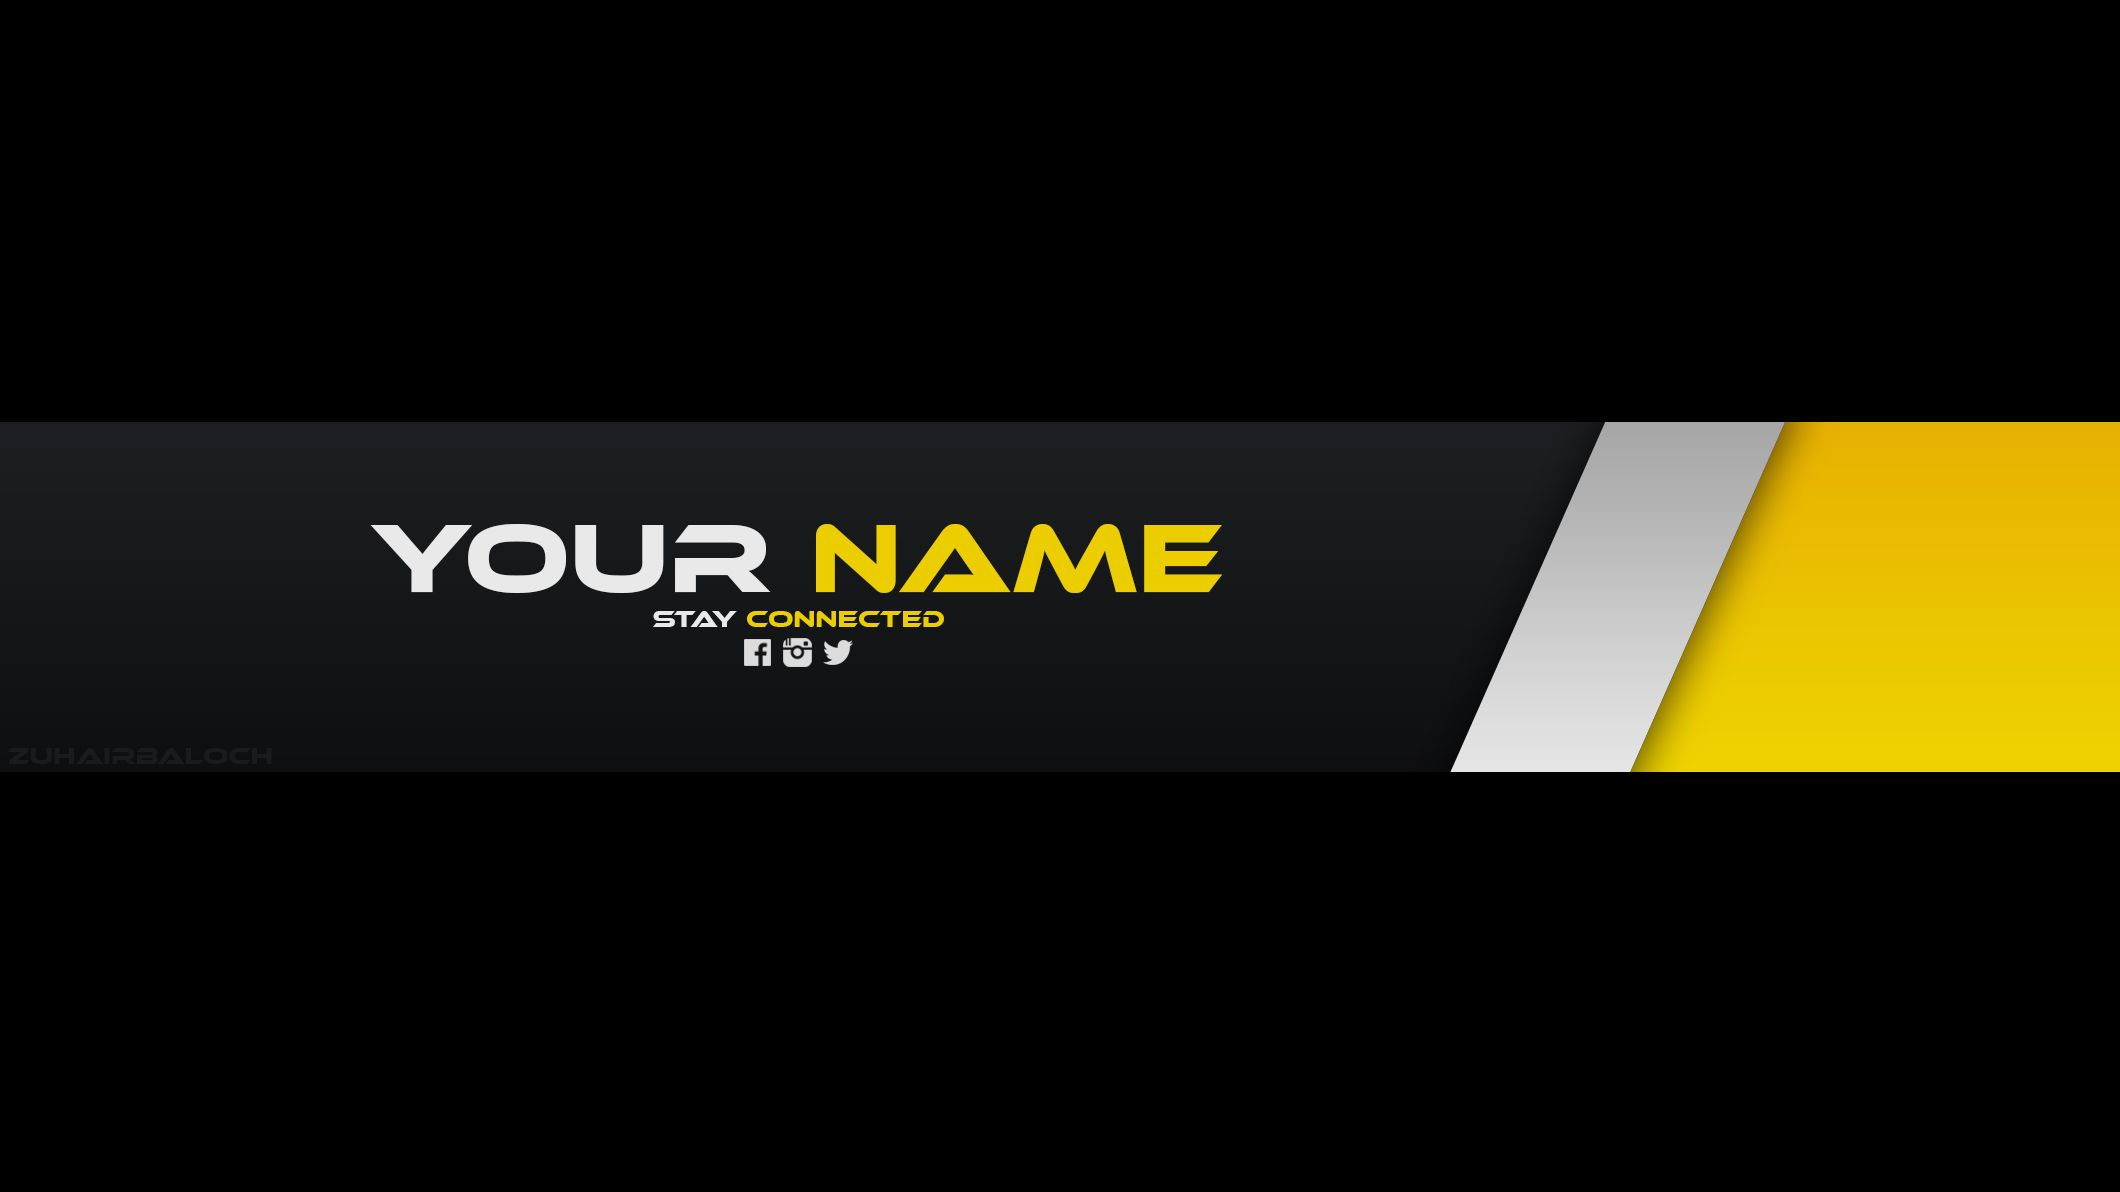 Free Youtube Banner Template 28 Download Now I Photoshop 2018 Youtube Banner Template Banner Template Photoshop Banner Template